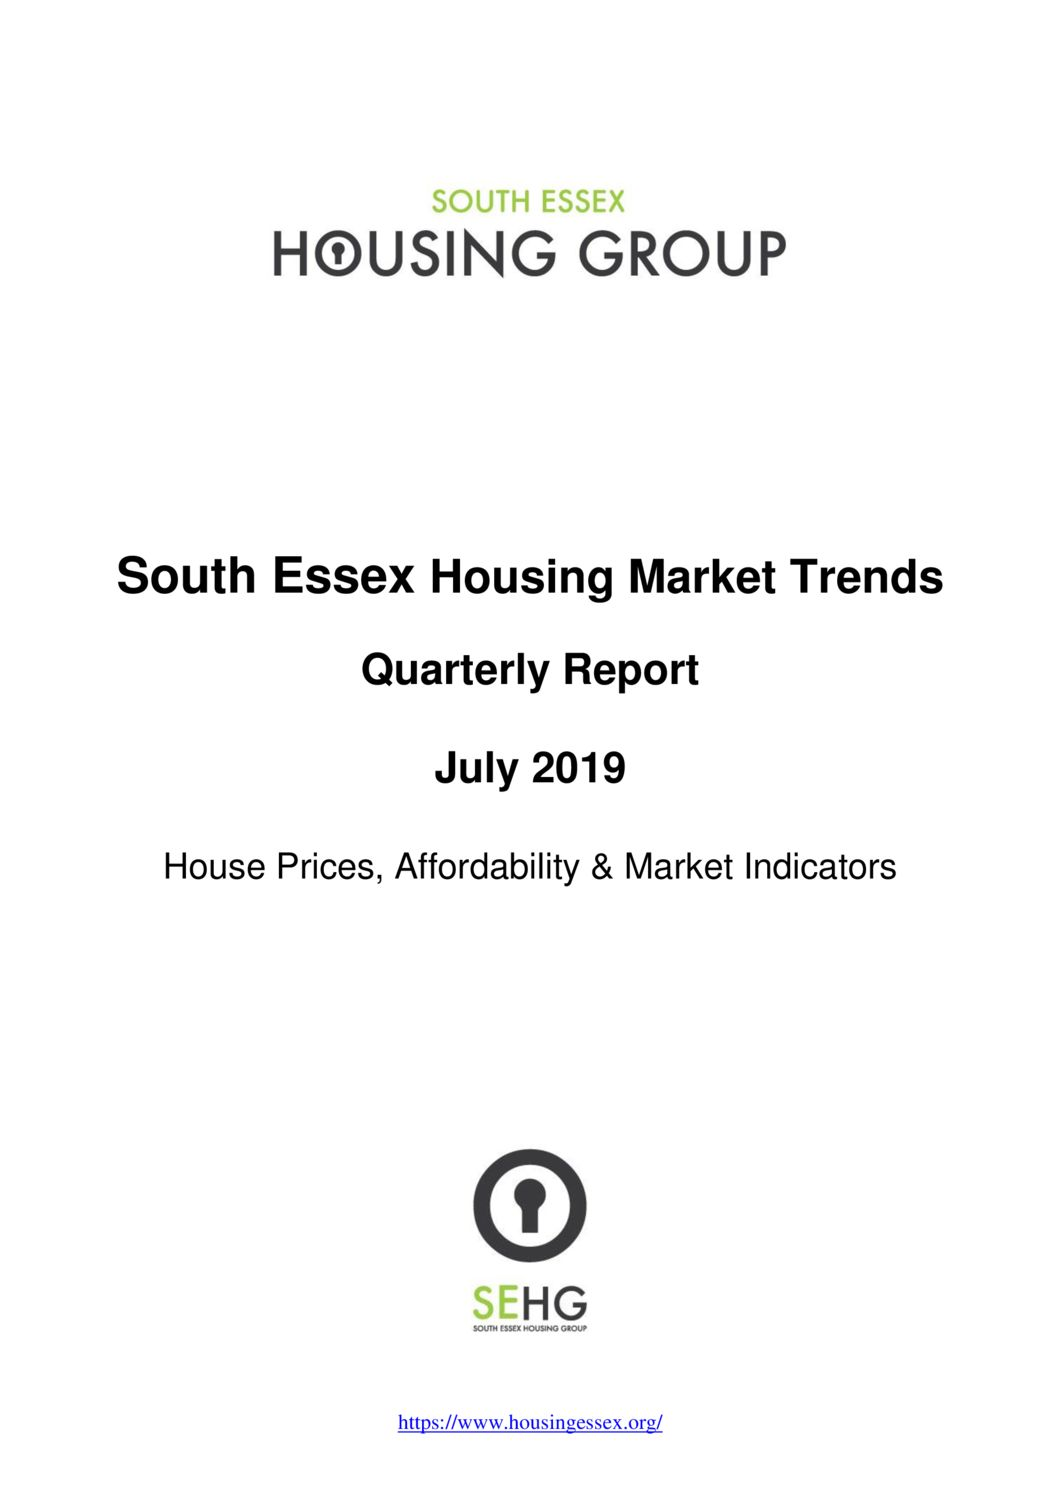 South Essex Housing Market Trends Report July 2019